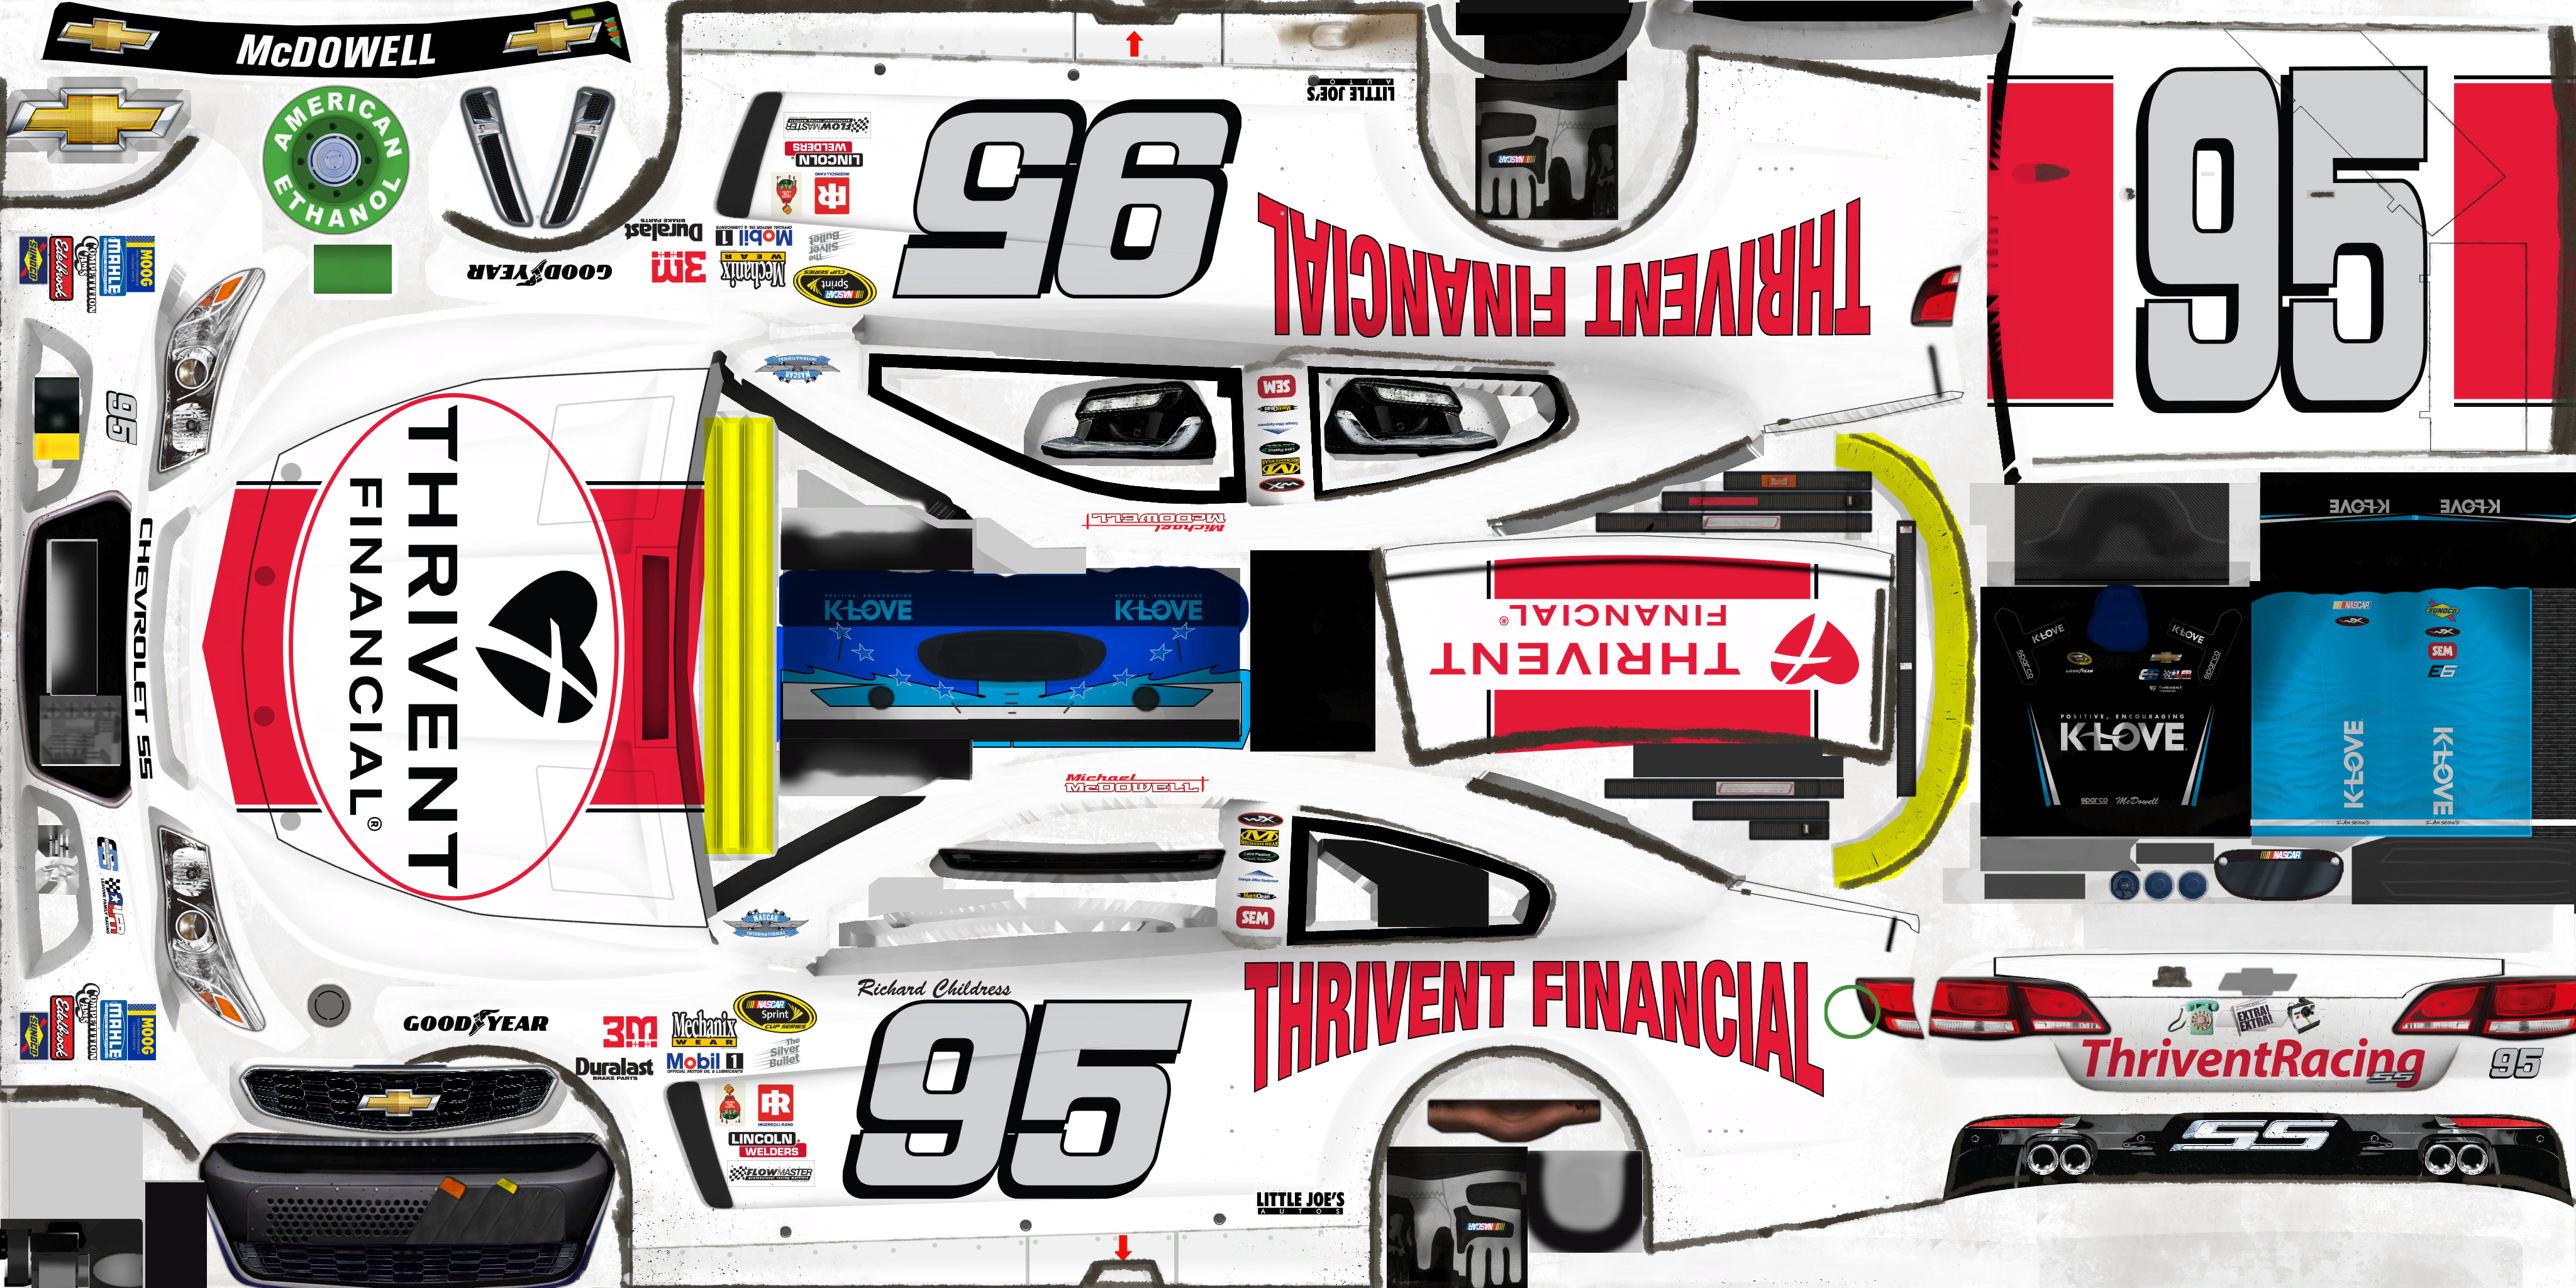 #95 Michael McDowell (Thrivent Financial Throwback)